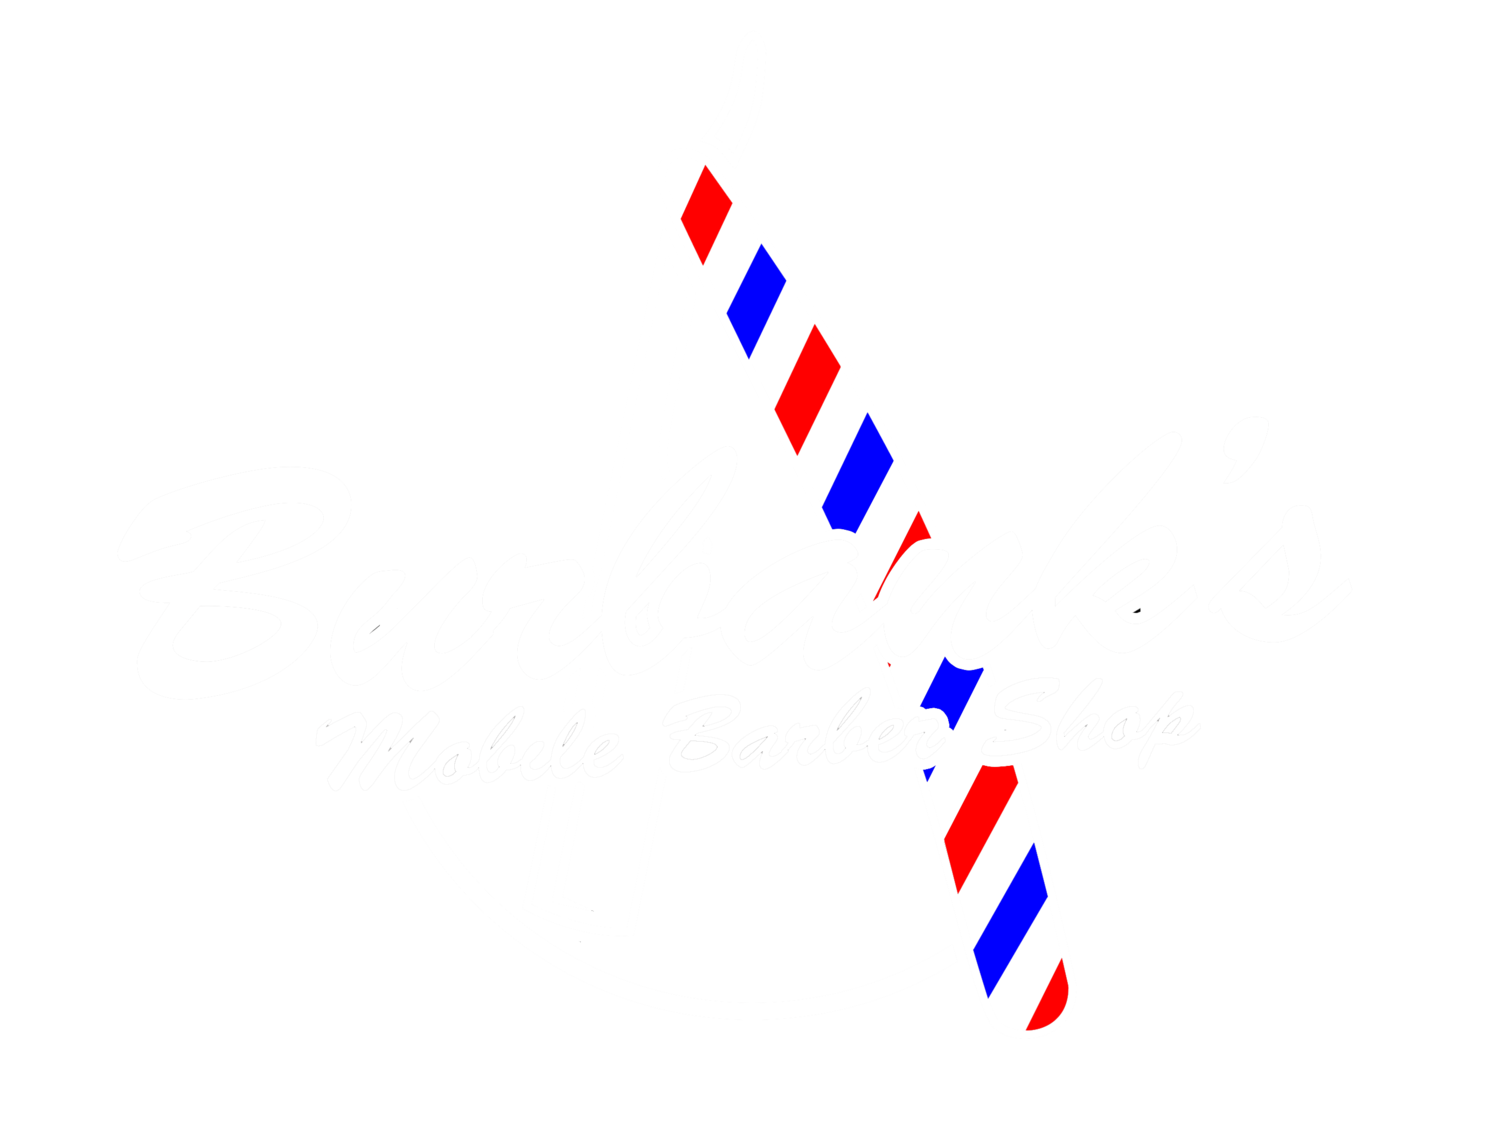 Burbank's Mobile Barber Shop